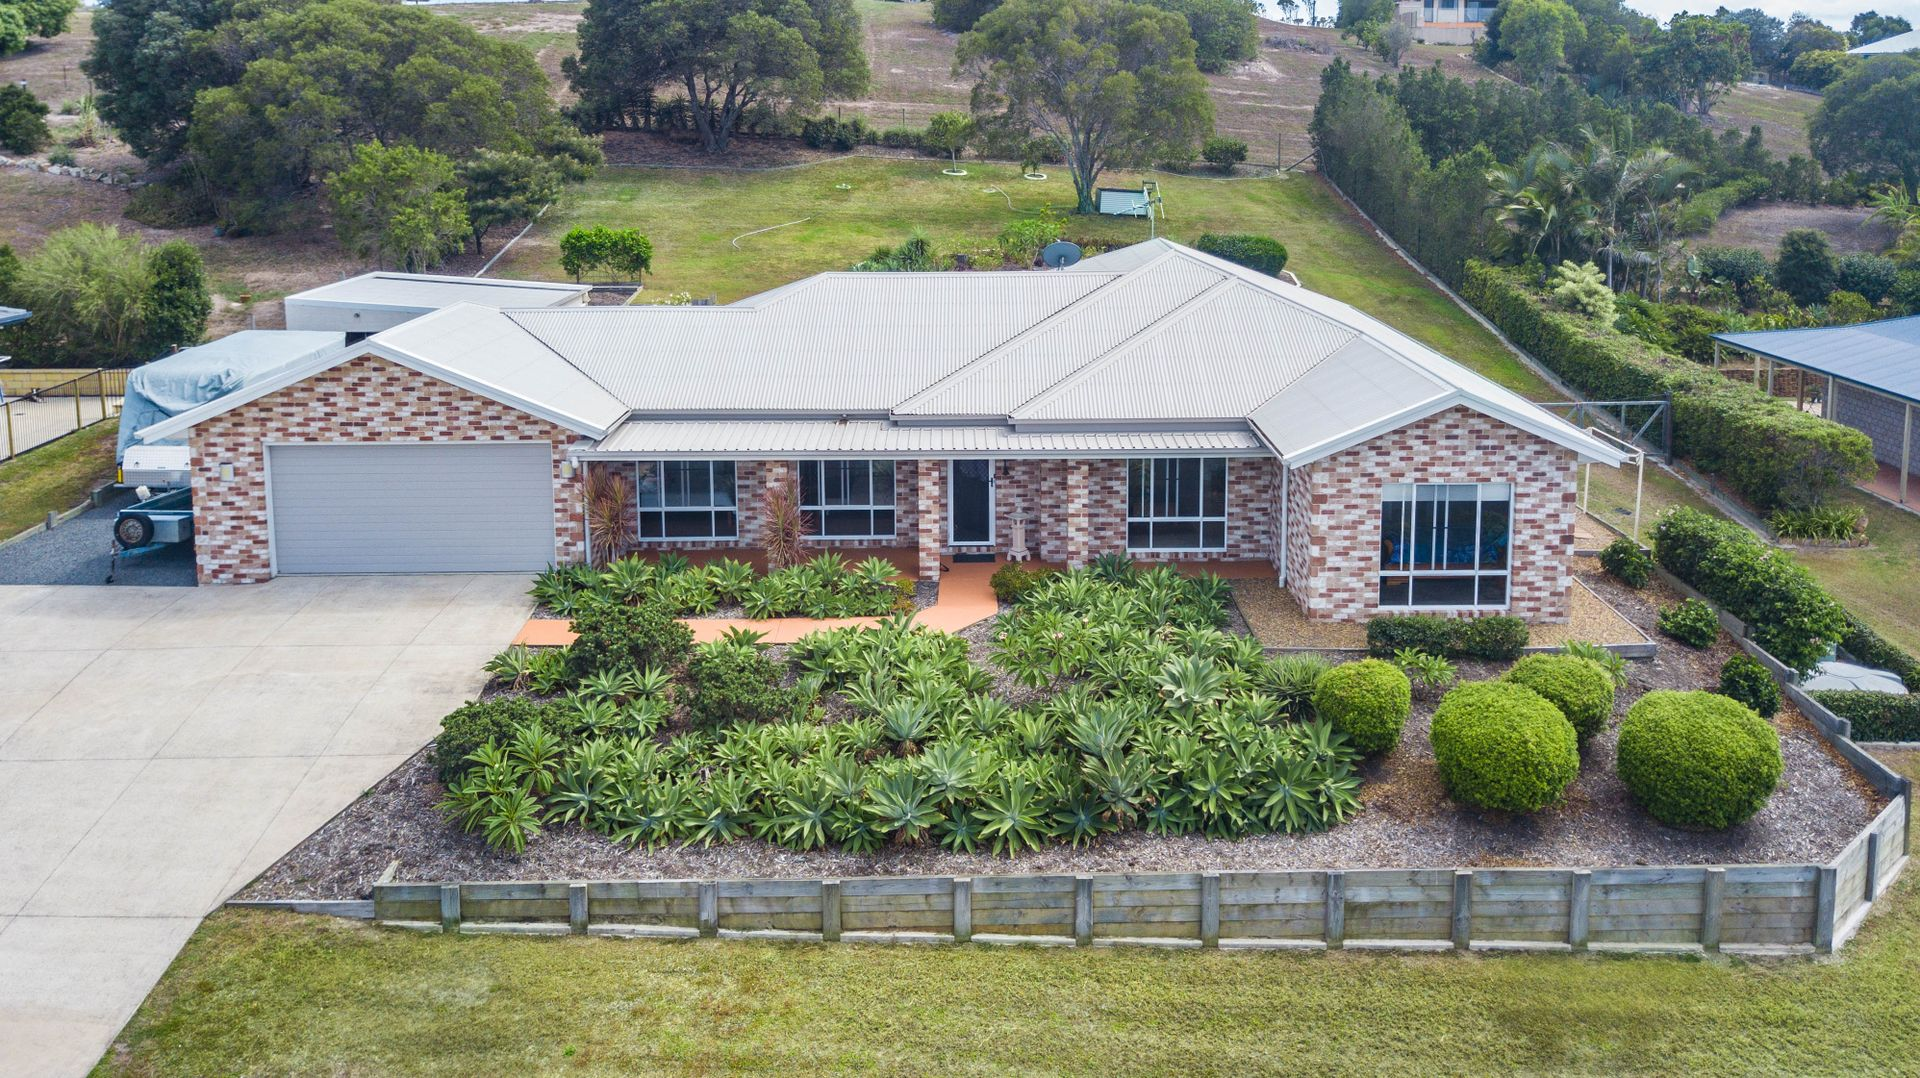 54-56 Parview Drive, Craignish QLD 4655, Image 0